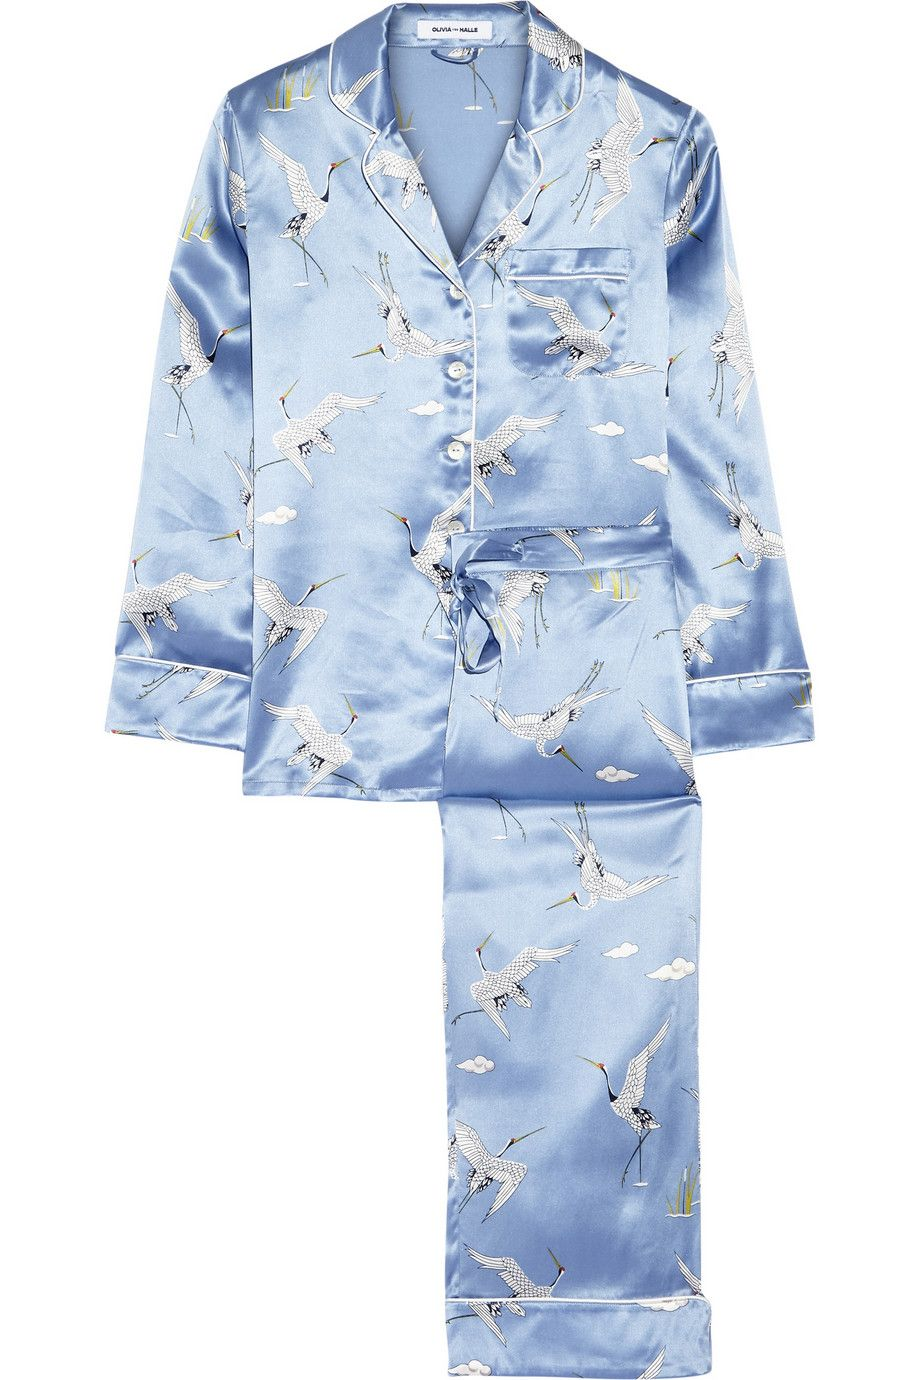 "<p>Olivia von Halle Lila Printed Silk-Satin Pajama Set, $525; <a href=""http://www.net-a-porter.com/us/en/product/657599/olivia_von_halle/lila-printed-silk-satin-pajama-set"">net-a-porter.com</a></p><p><strong></strong><strong><strong>How soon can I get them?</strong></strong> Order by 10AM in select cities and you can get your PJs the same exact day. </p>"